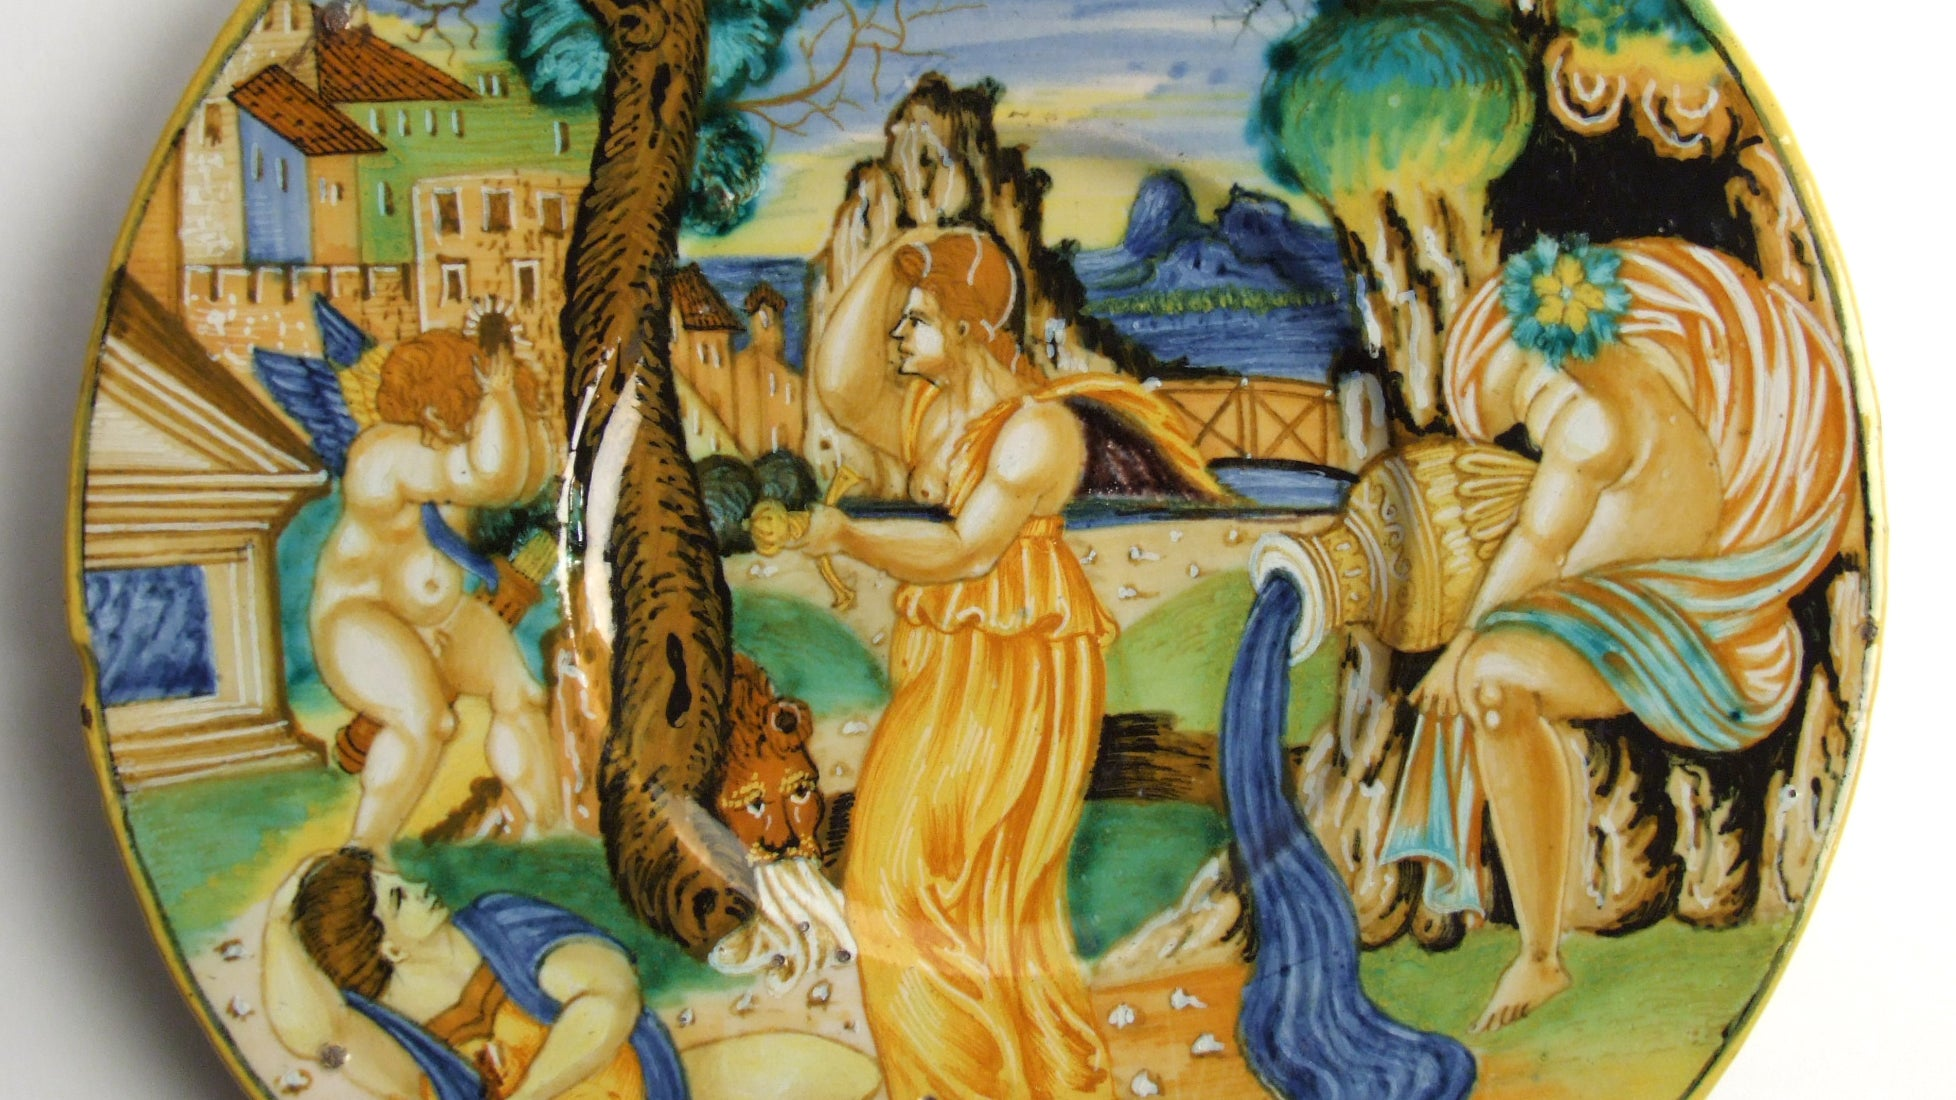 Maiolica plate painted by Francesco Xanto Avelli showing Pyramus and Thisbe Made in Urbino, Italy, 1534.